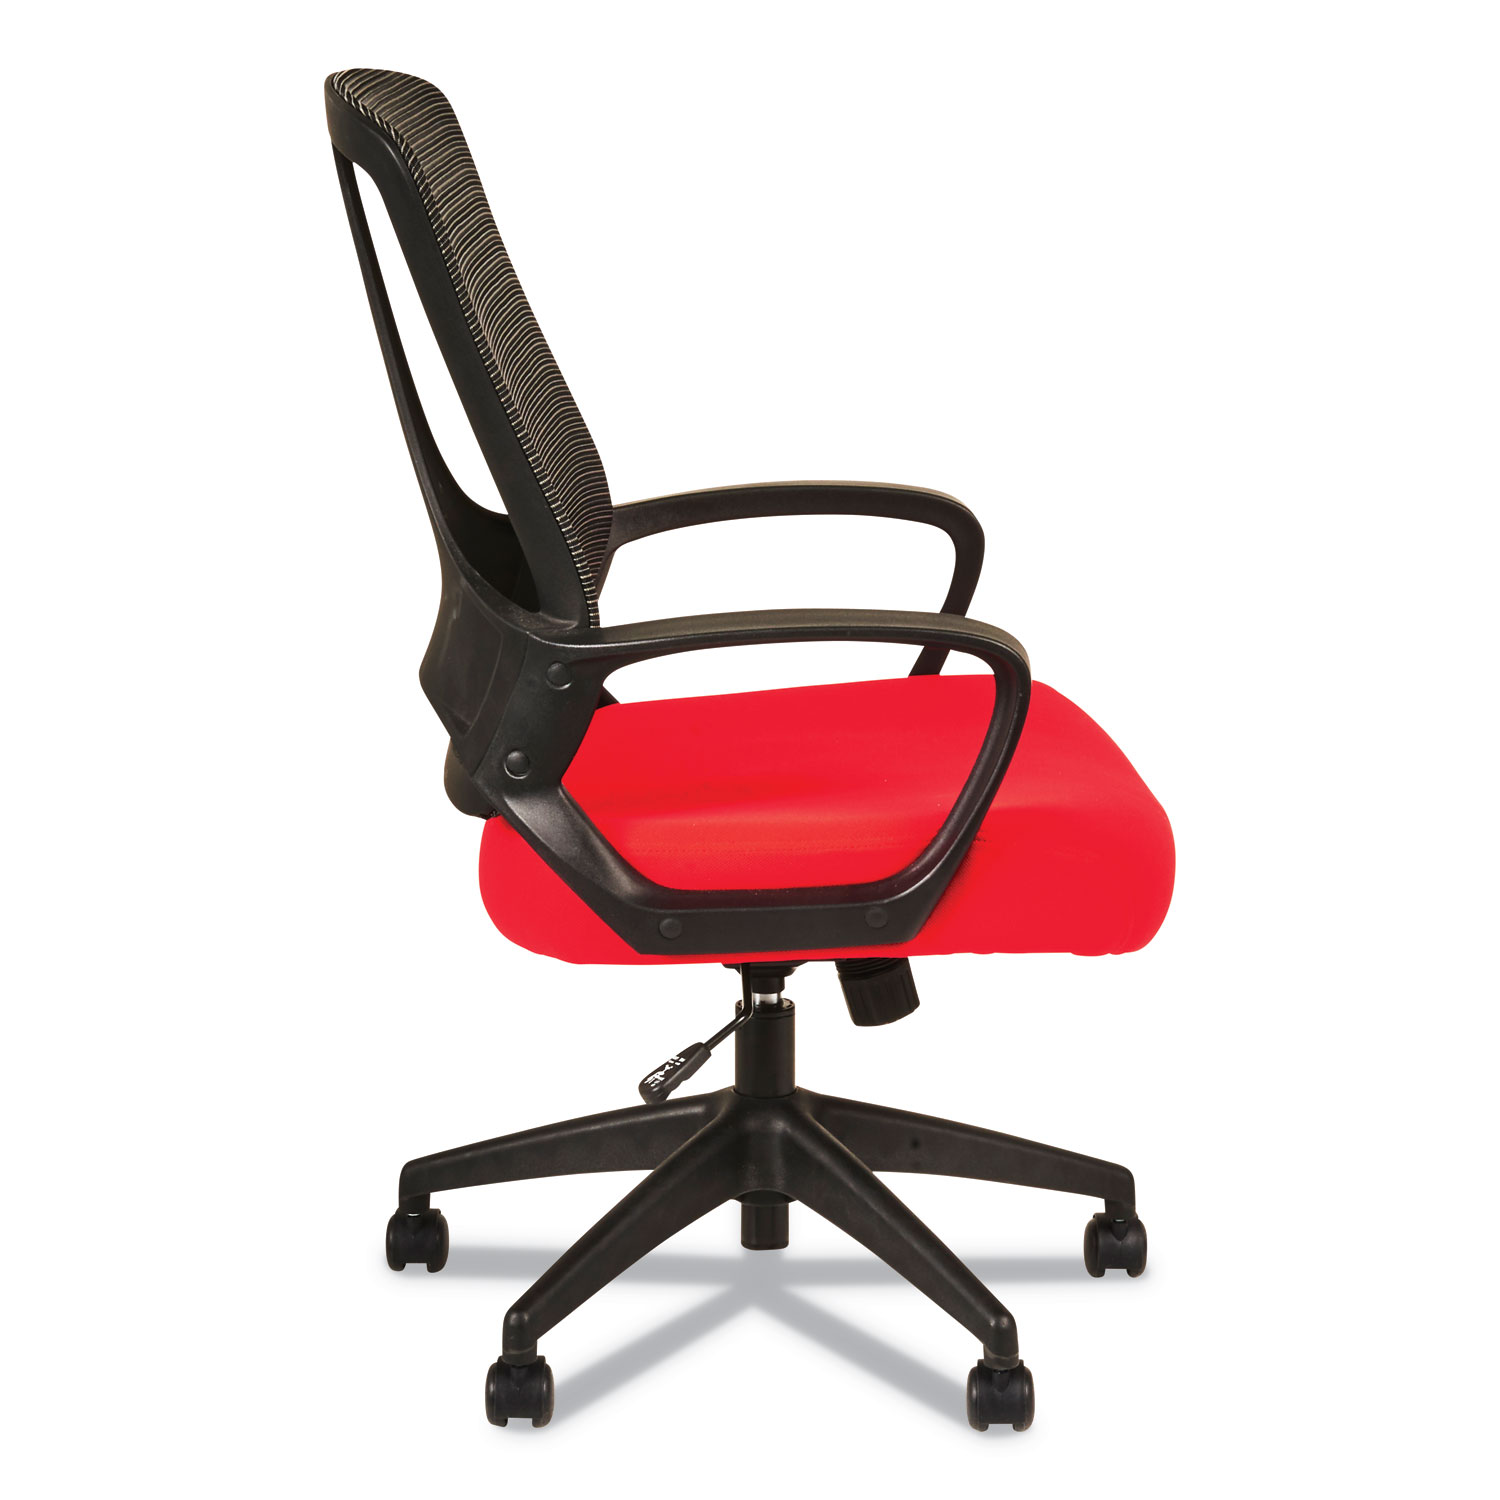 Alera Office Chairs Alera Mb Series Mesh Mid Back Office Chair Red Black Office